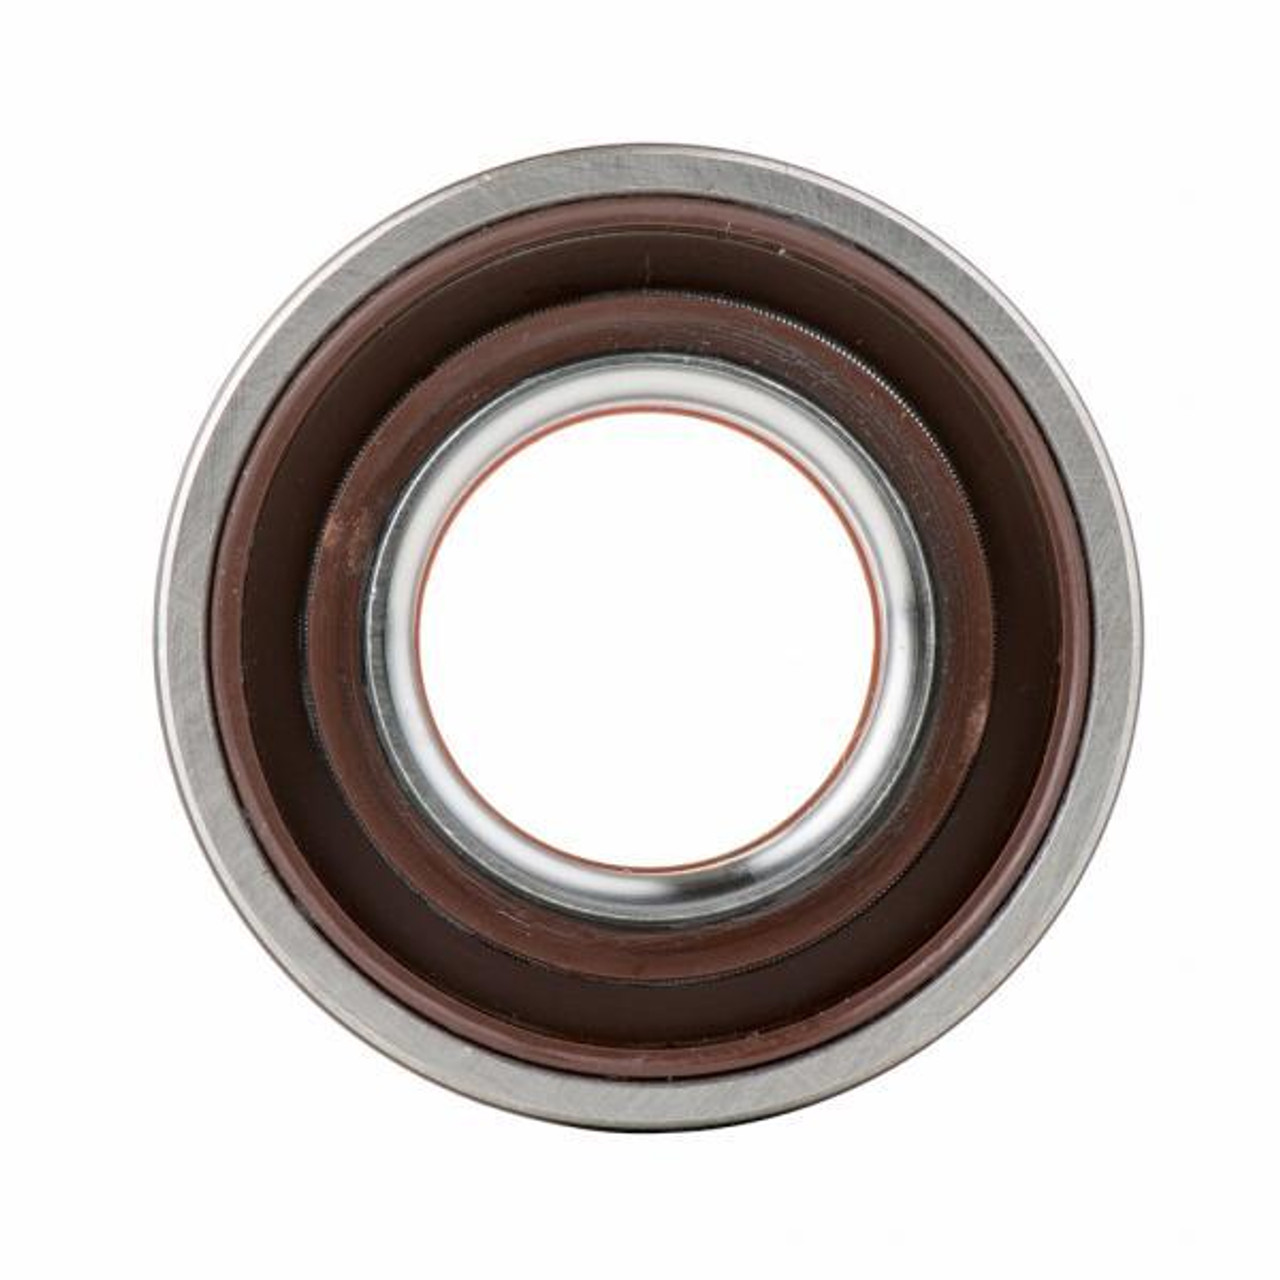 Crankshaft bearing with oil seal with PTFE lip, back